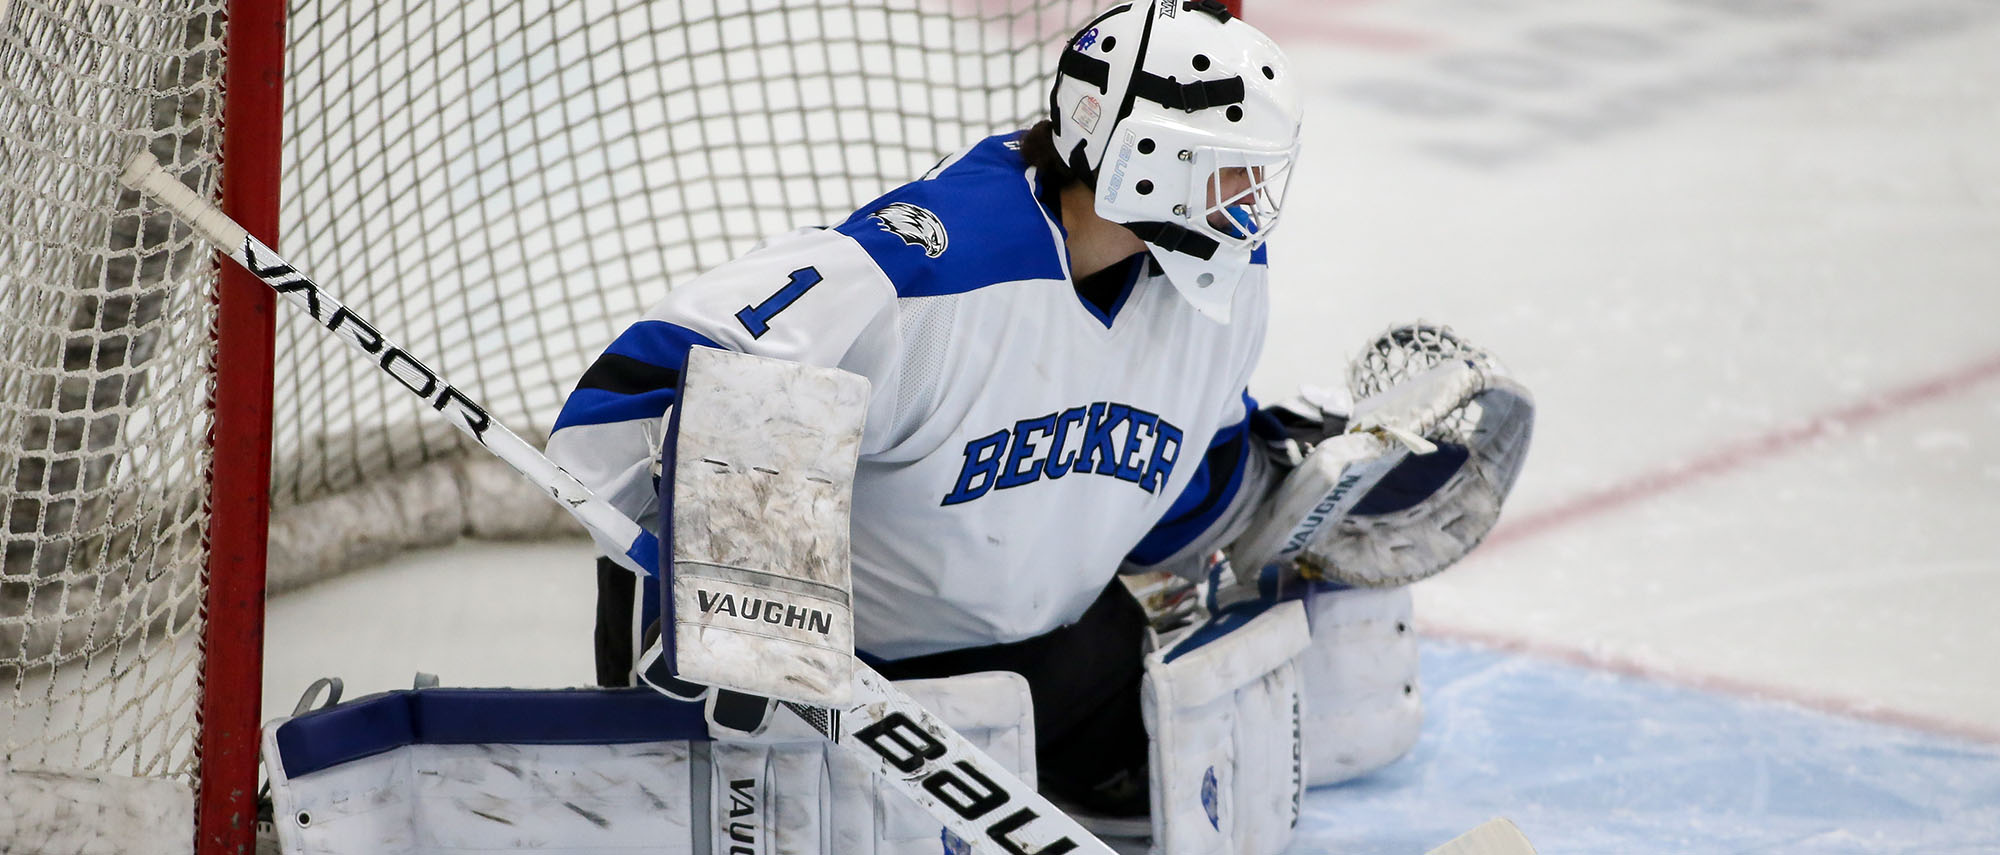 Madison Rigsby made 42 saves in a 1-0 loss to the University of New England on Saturday.